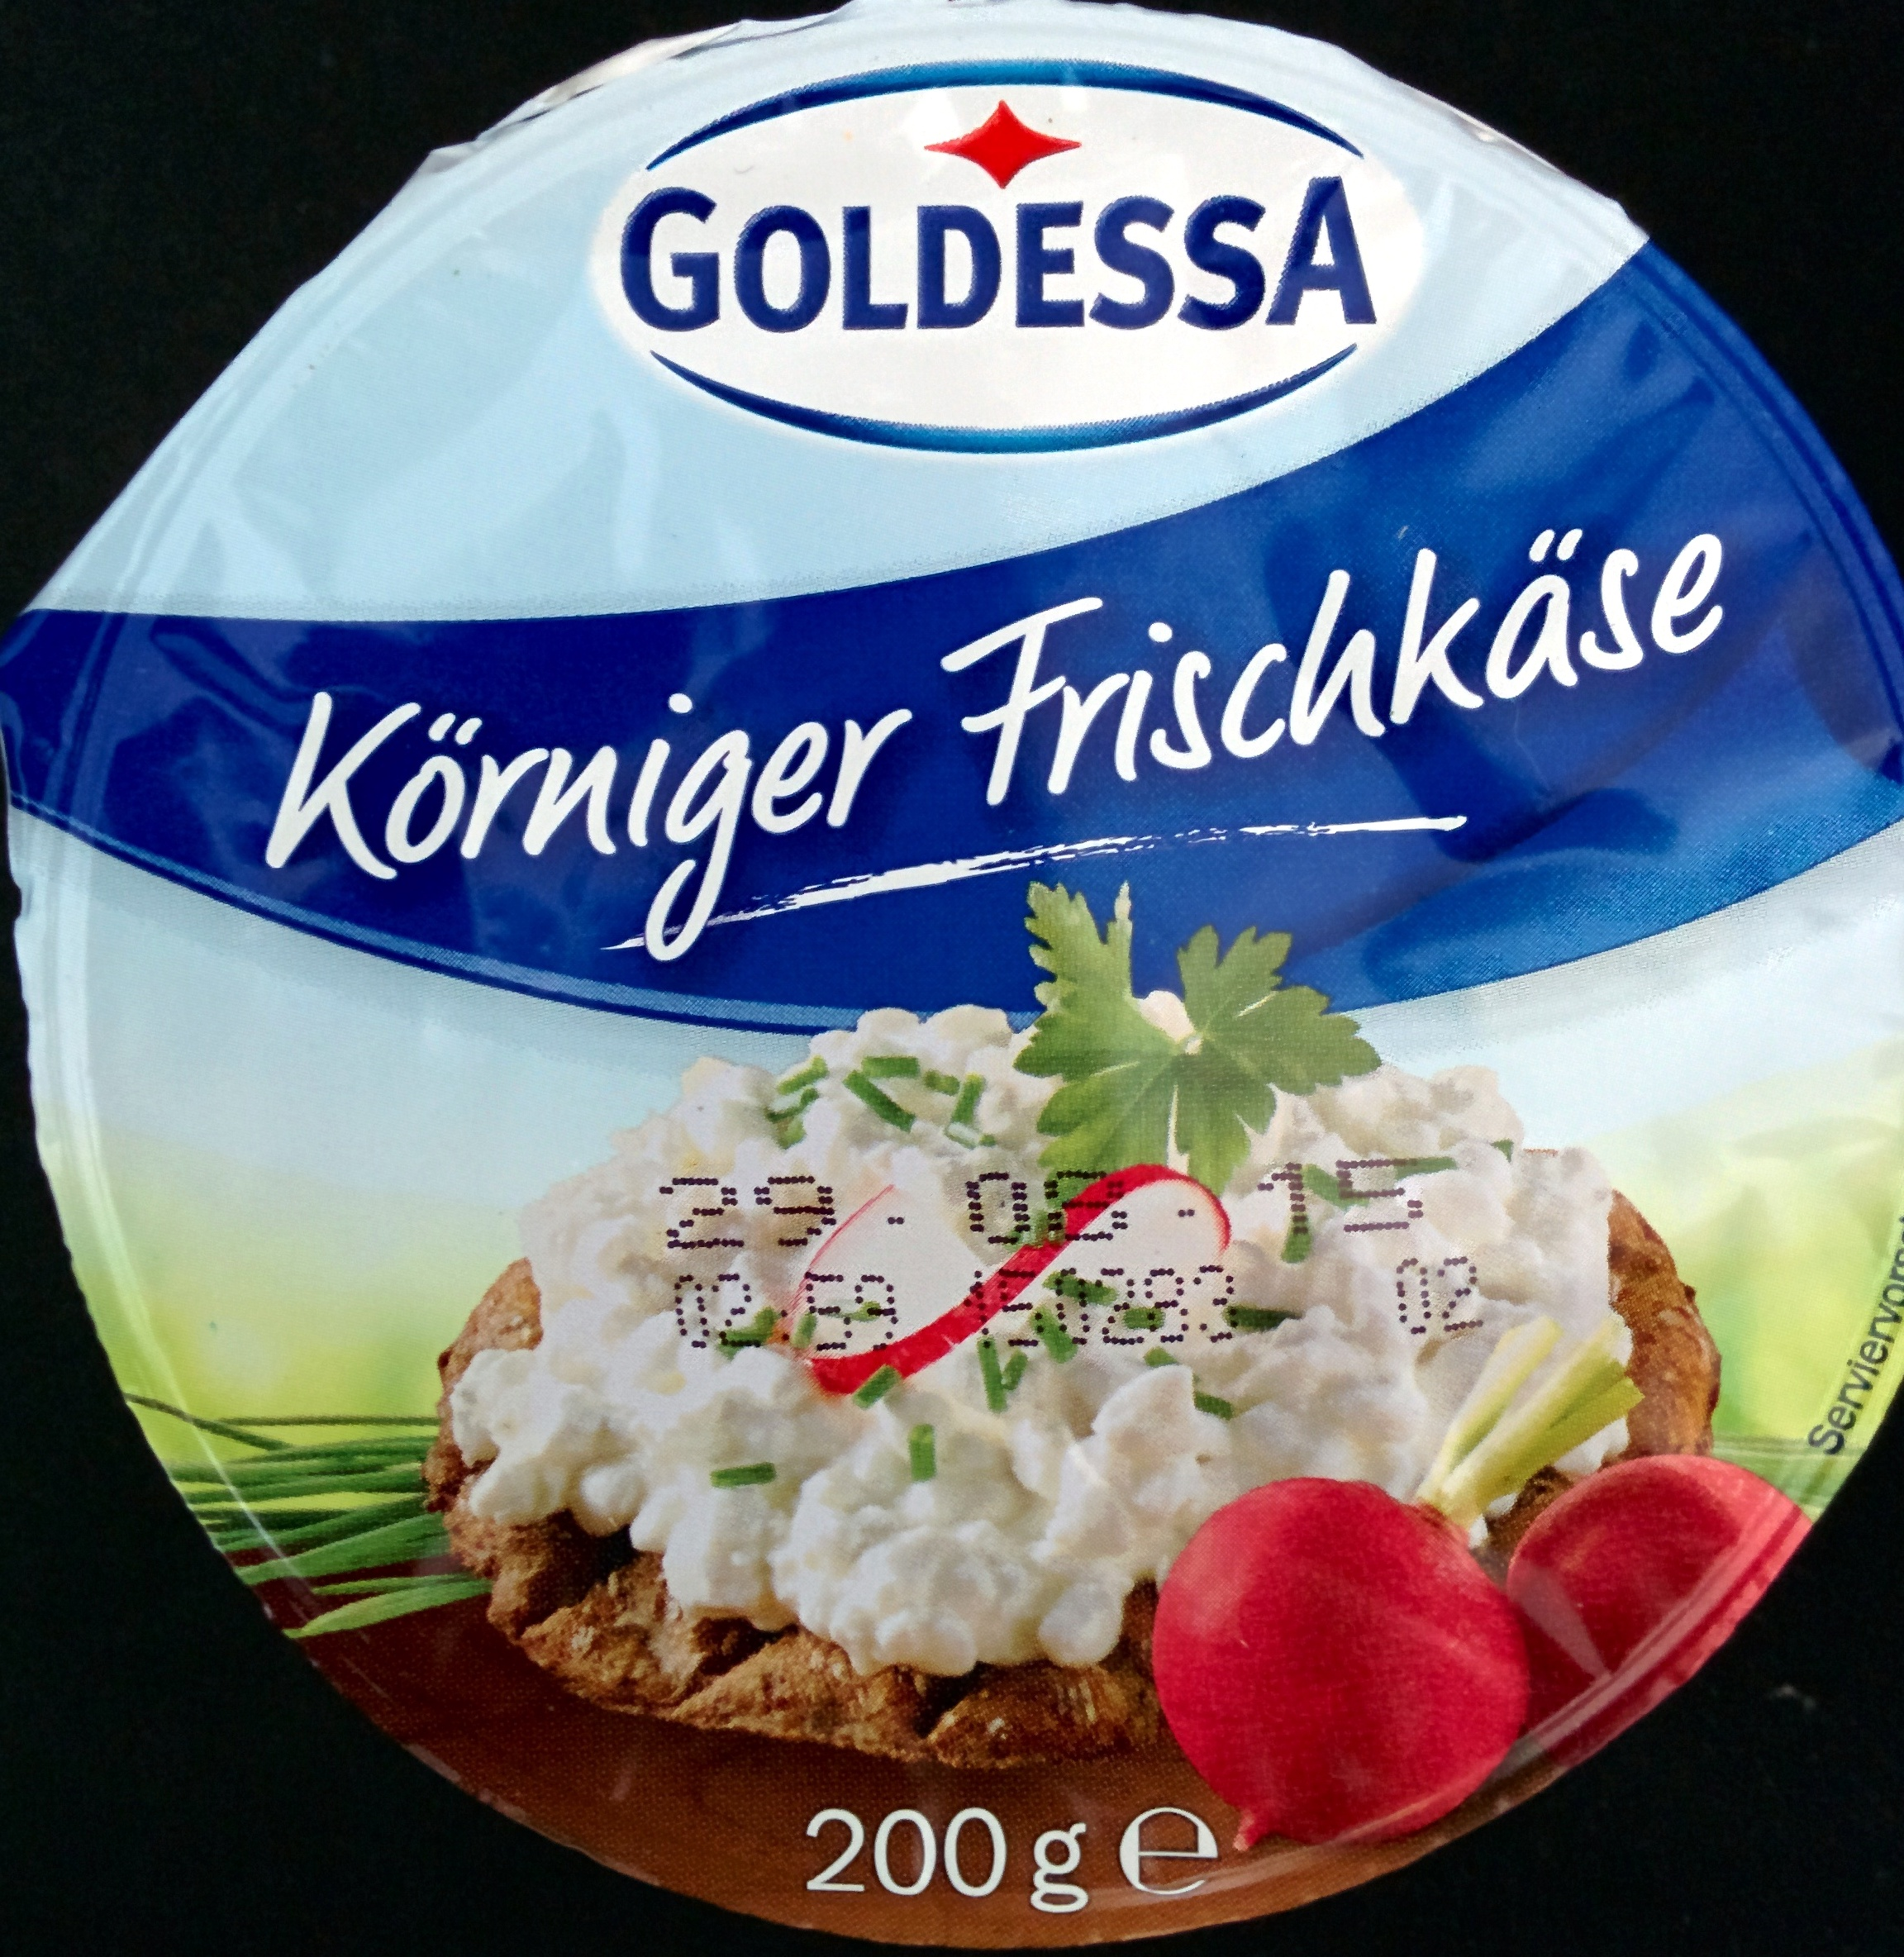 Protein Shaker Lidl: Cottage Cheese Nutrition Facts Lidl